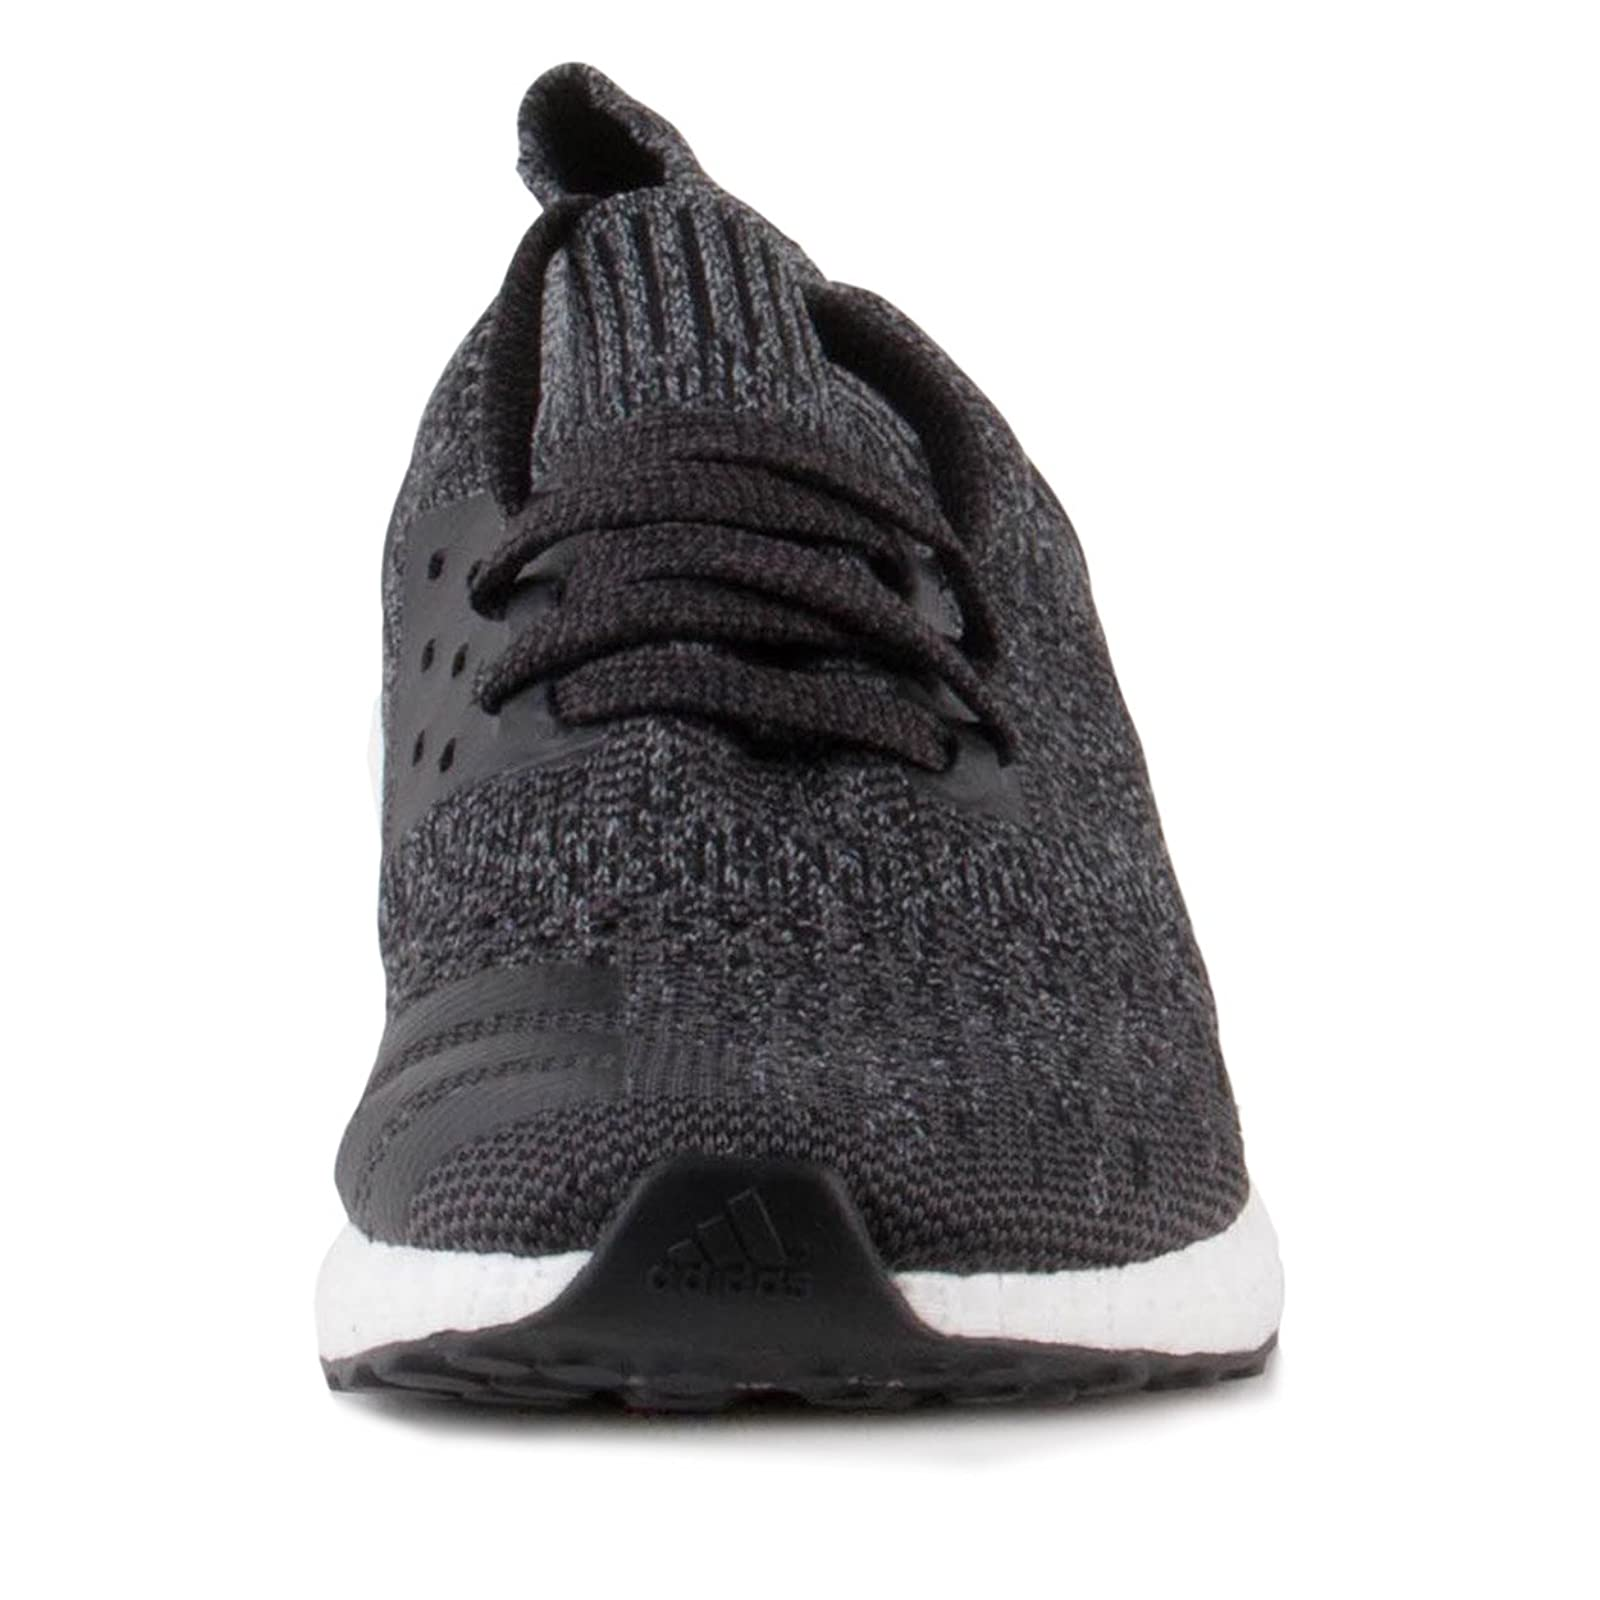 detailed look 437c5 8dd2a adidas Ultraboost Uncaged Shoe Men's Running BY2551